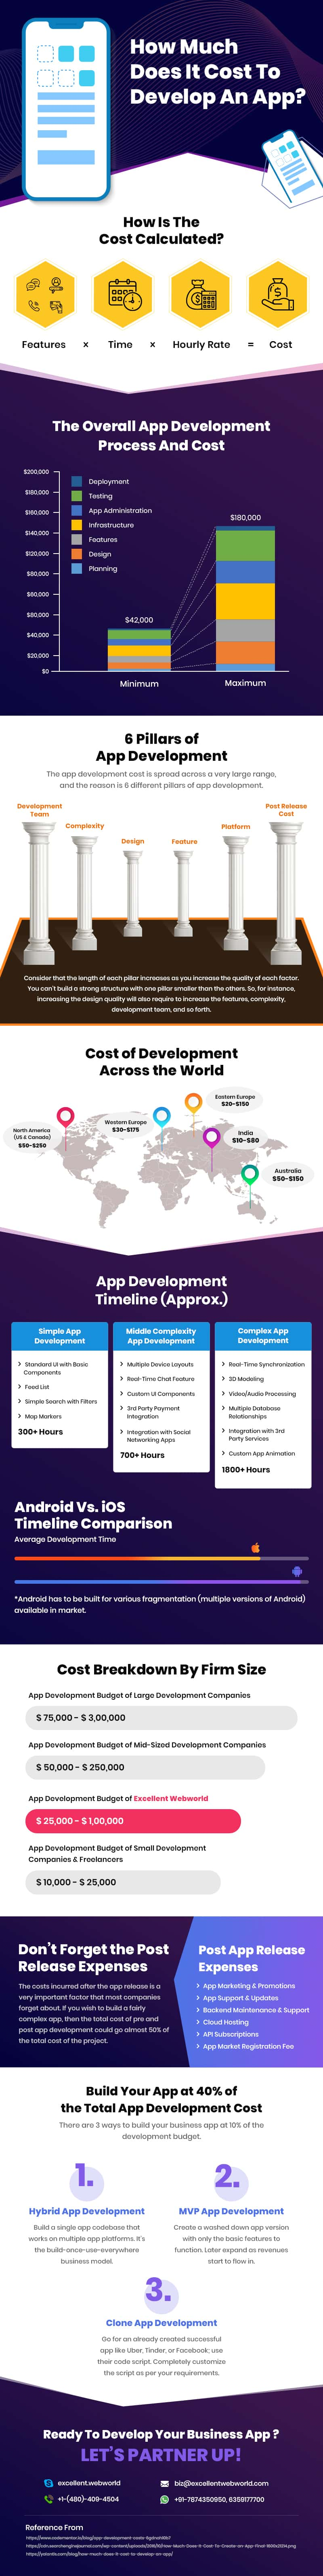 App Development Cost Infographic